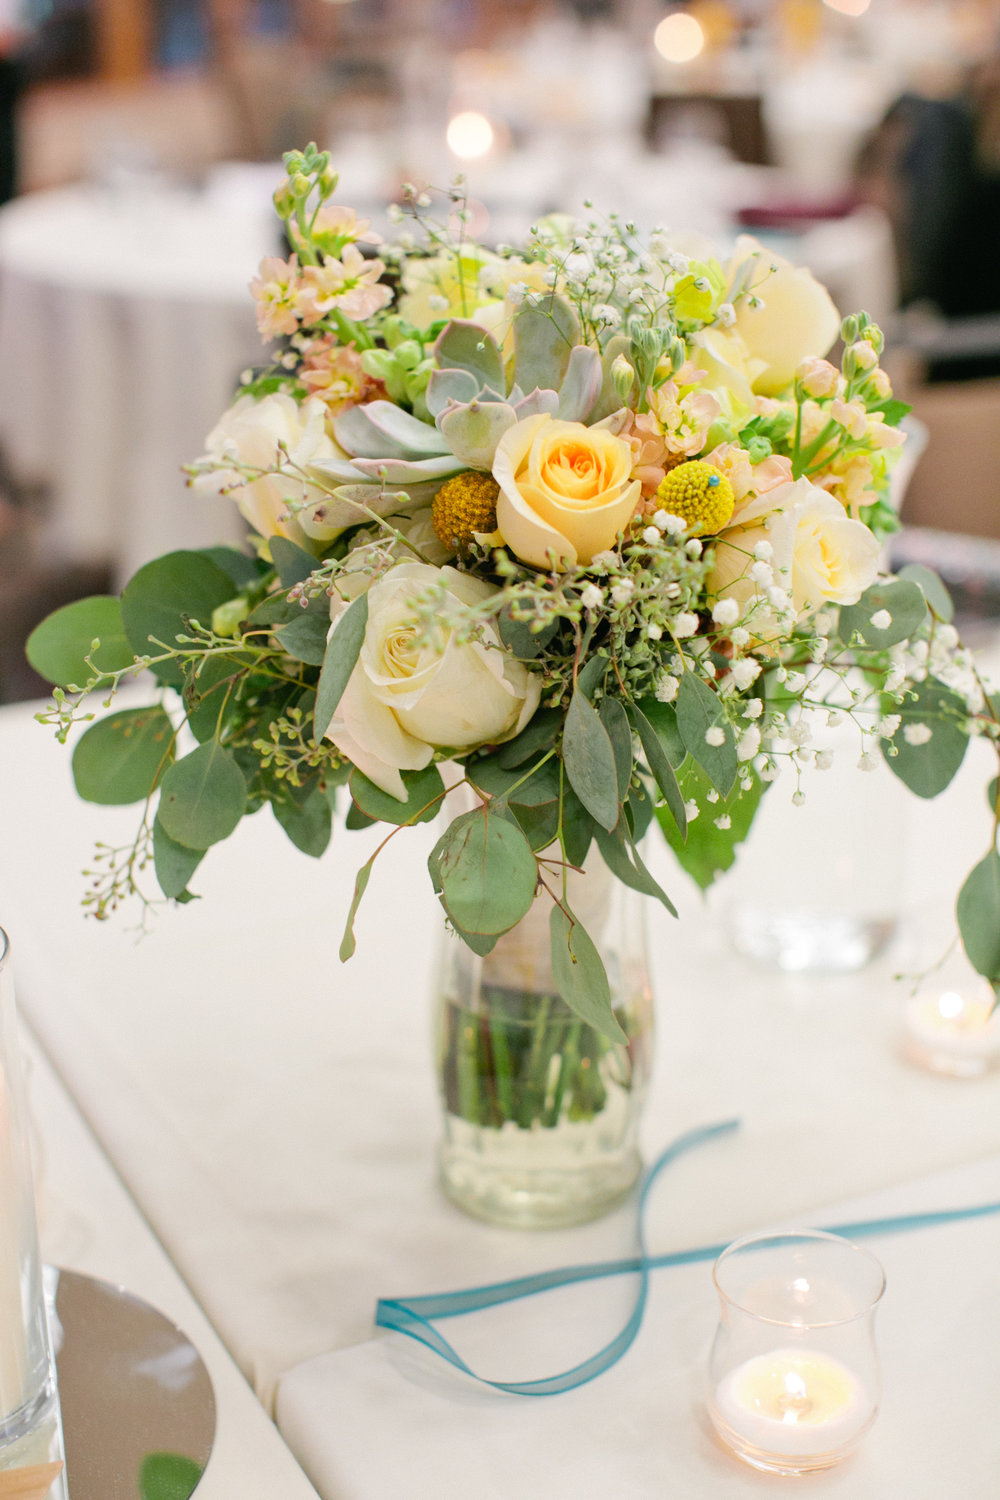 yellow and white roses with babies breath for wedding flowers